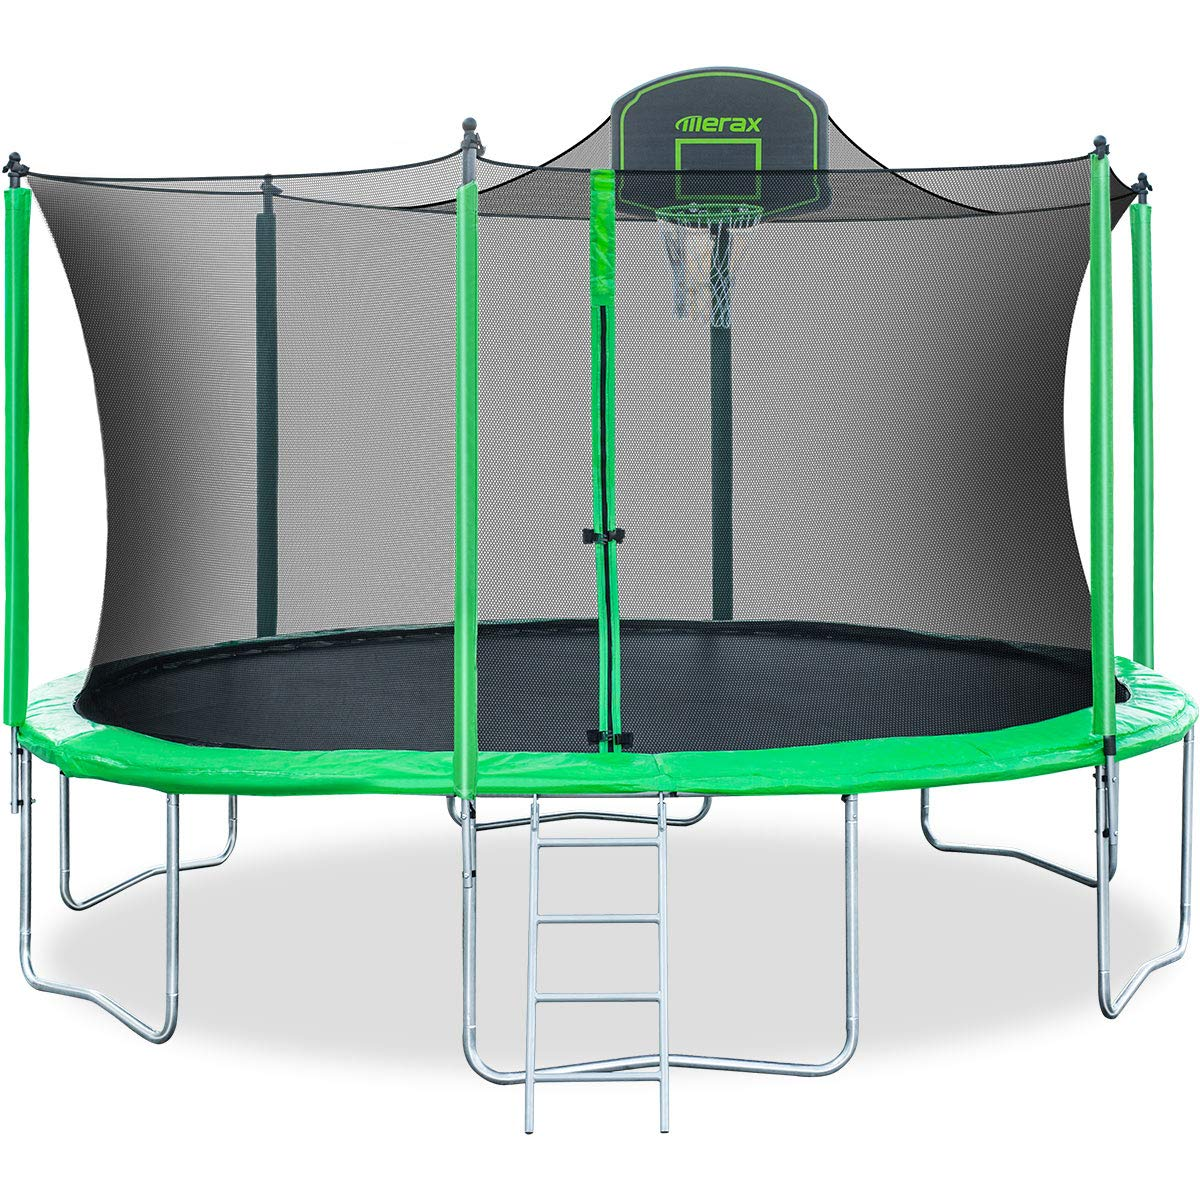 Merax 14FT 12FT Trampoline with Safety Enclosure Net, Basketball Hoop and Ladder - BV Certificated - Basketball Trampoline (14 Feet)